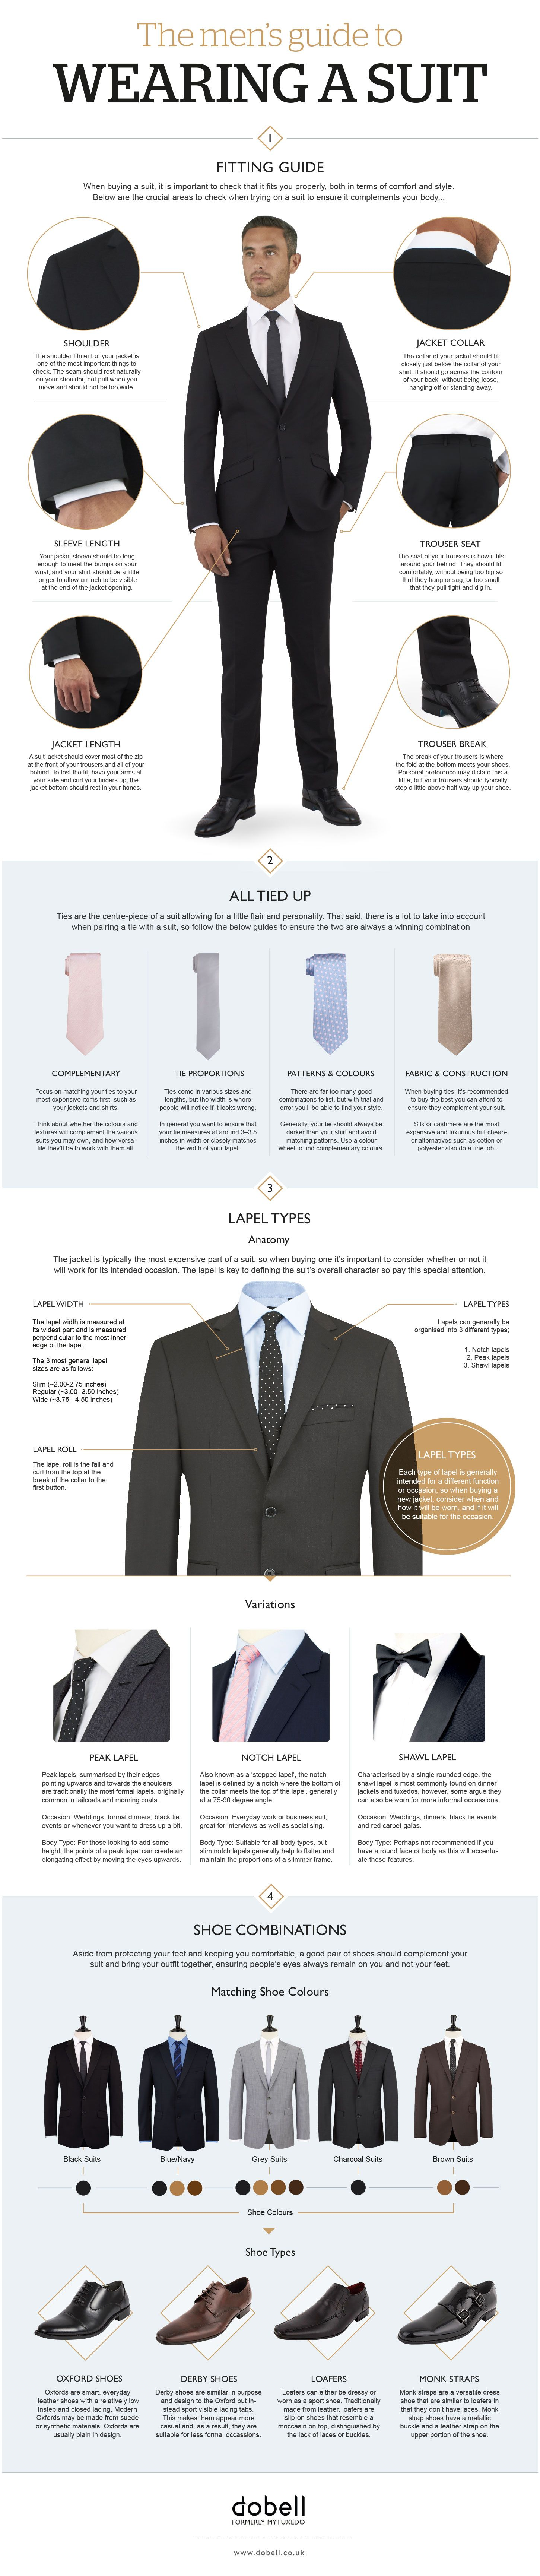 d42ab642bb7 A suit can make you look superior to the rest of your colleagues. They add  so much splendor to your dashing personality. Just take a look at these  tips.